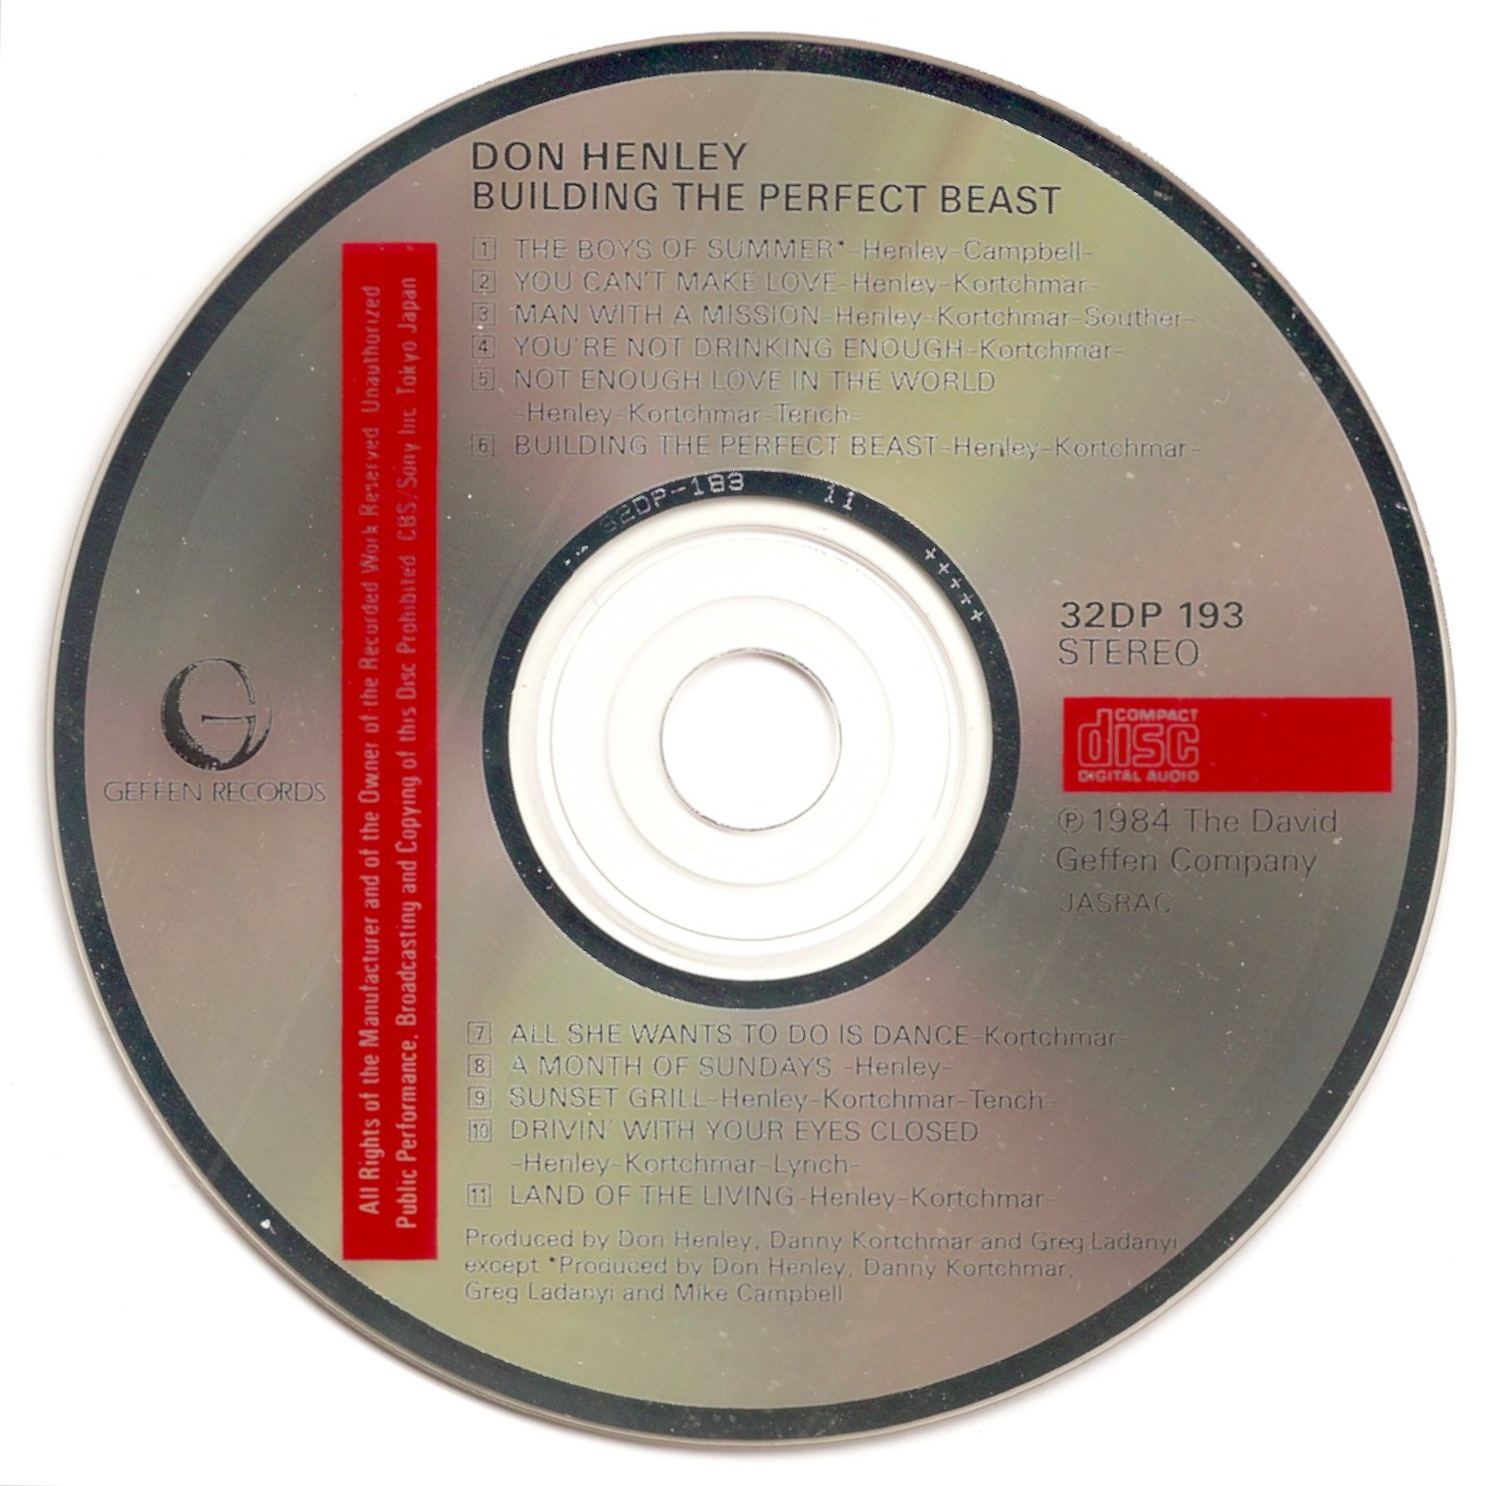 Don Henley - Building The Perfect Beast   Releases   Discogs